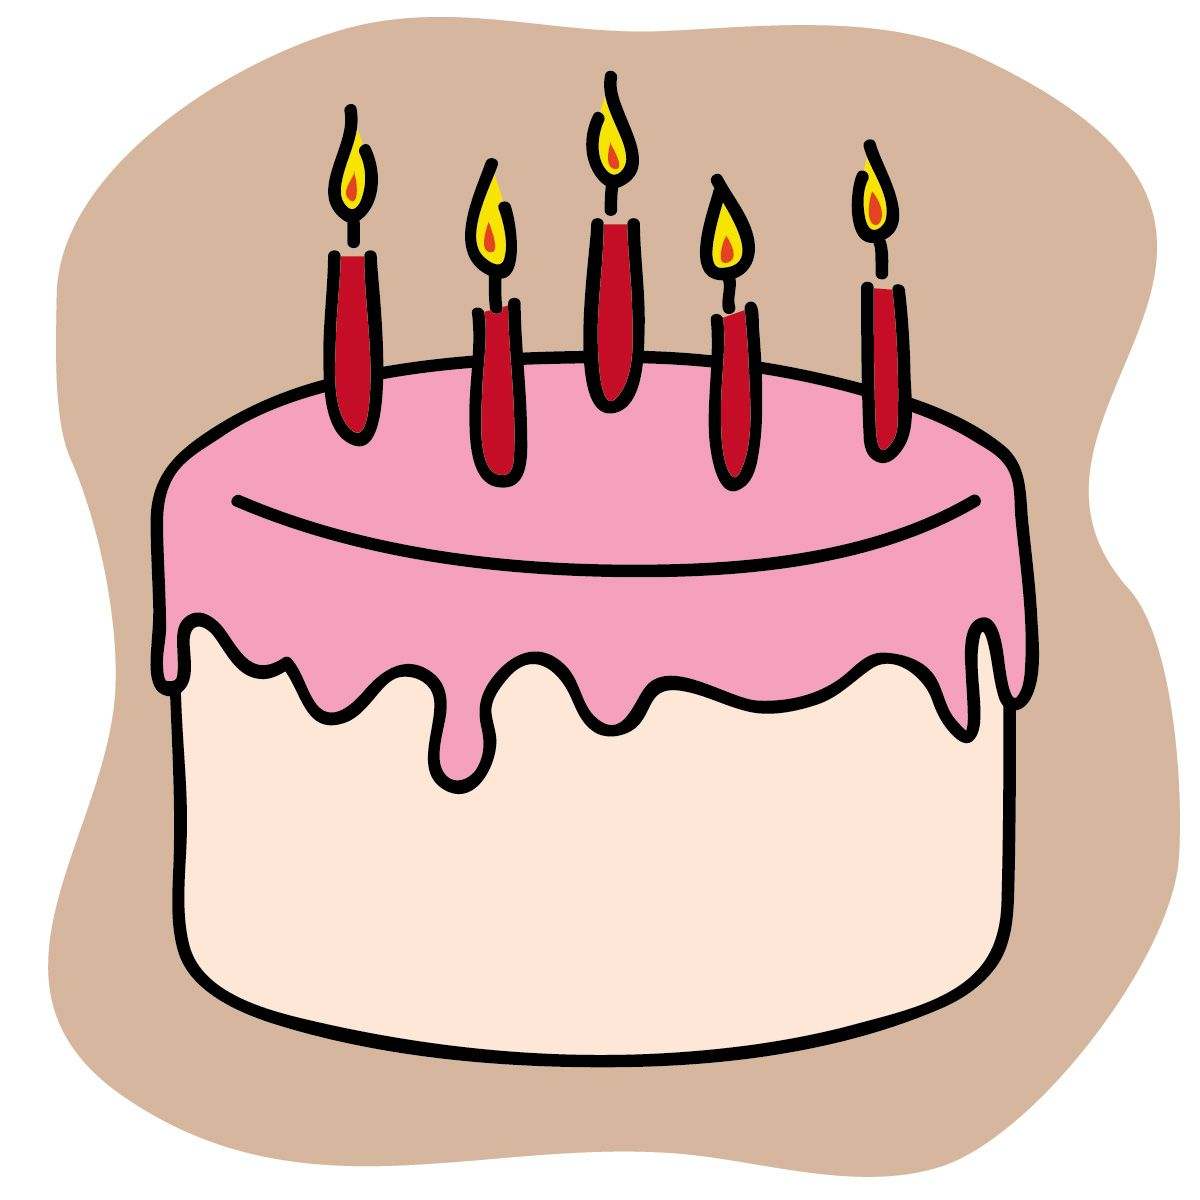 Happy Birthday Chocolate Cake Clip Art